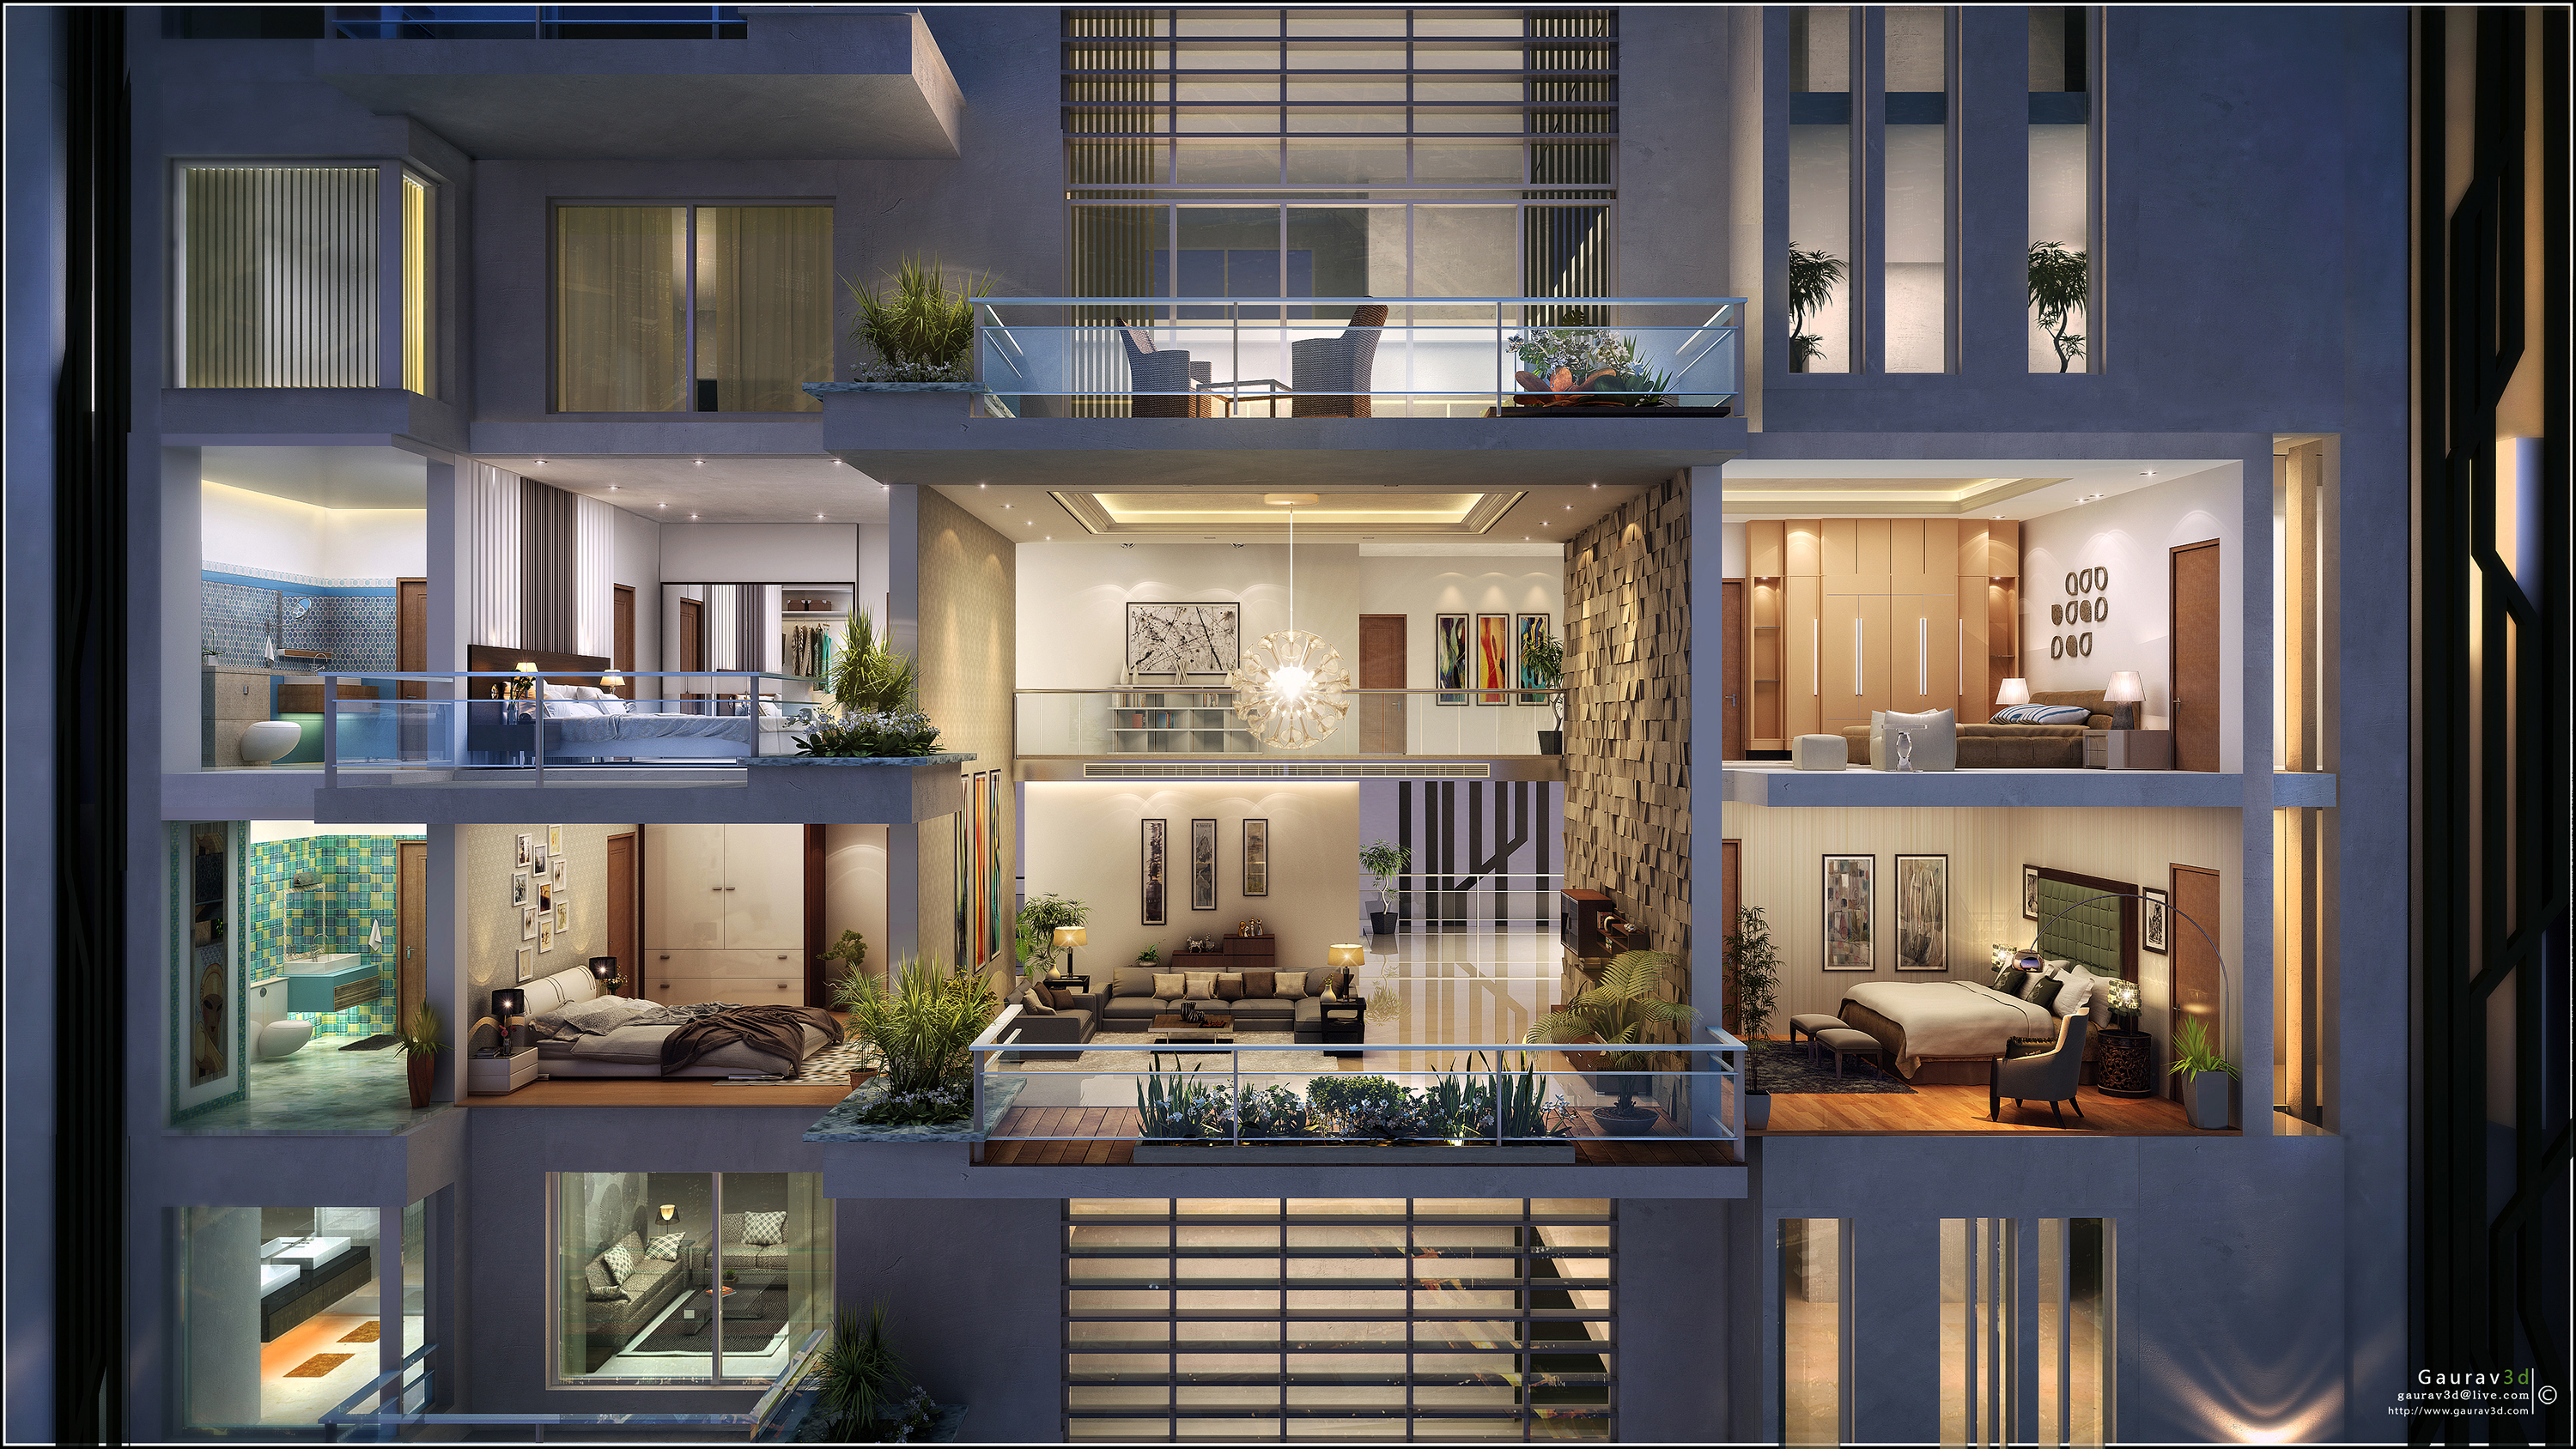 Cross Section by Gaurav 3D Architectural Visualisation at Coroflotcom